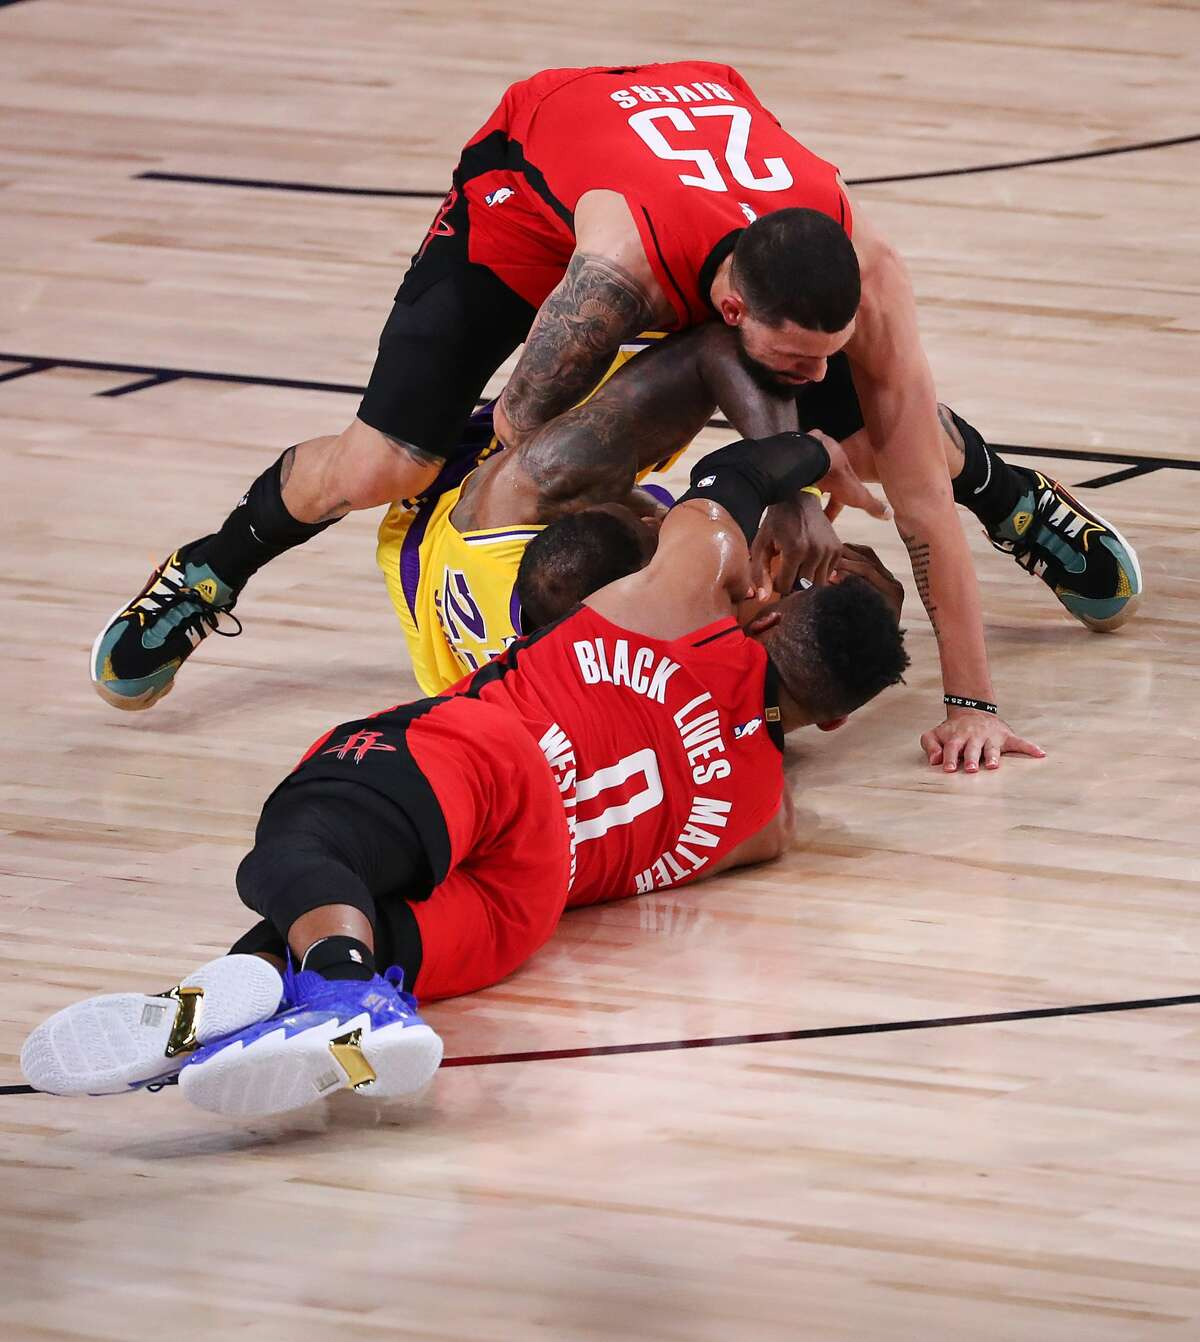 LAKE BUENA VISTA, FLORIDA - SEPTEMBER 10: LeBron James #23 of the Los Angeles Lakers scrambles for a loose ball against Russell Westbrook #0 of the Houston Rockets and Austin Rivers #25 of the Houston Rockets during the fourth quarter in Game Four of the Western Conference Second Round during the 2020 NBA Playoffs at AdventHealth Arena at the ESPN Wide World Of Sports Complex on September 10, 2020 in Lake Buena Vista, Florida. NOTE TO USER: User expressly acknowledges and agrees that, by downloading and or using this photograph, User is consenting to the terms and conditions of the Getty Images License Agreement. (Photo by Michael Reaves/Getty Images)